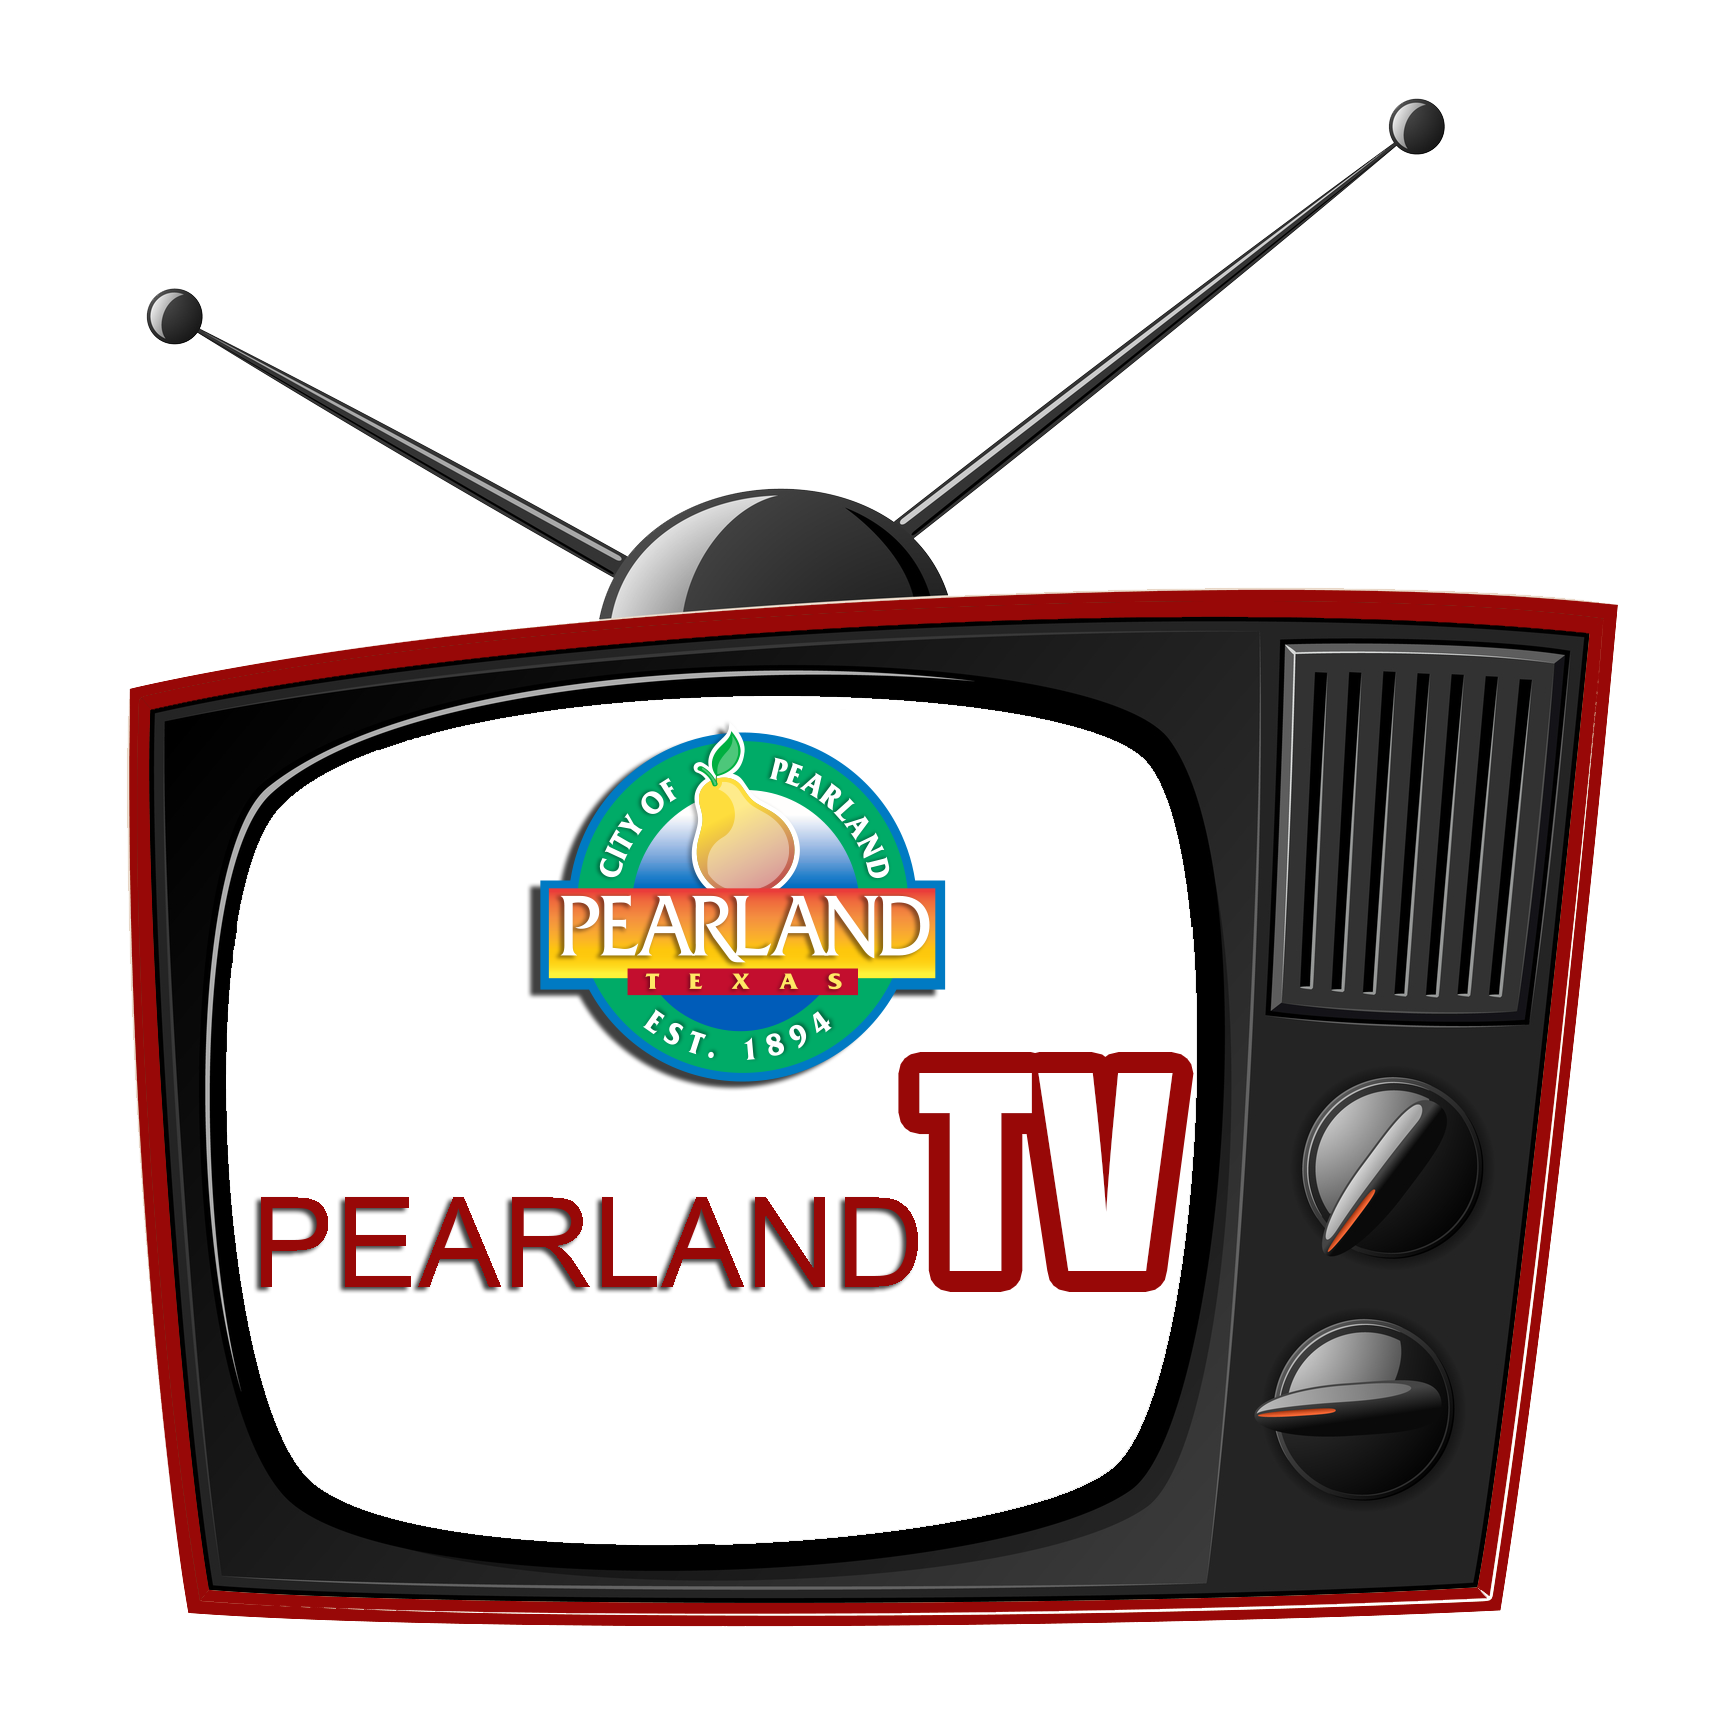 City of pearland tx. Courthouse clipart town hall building